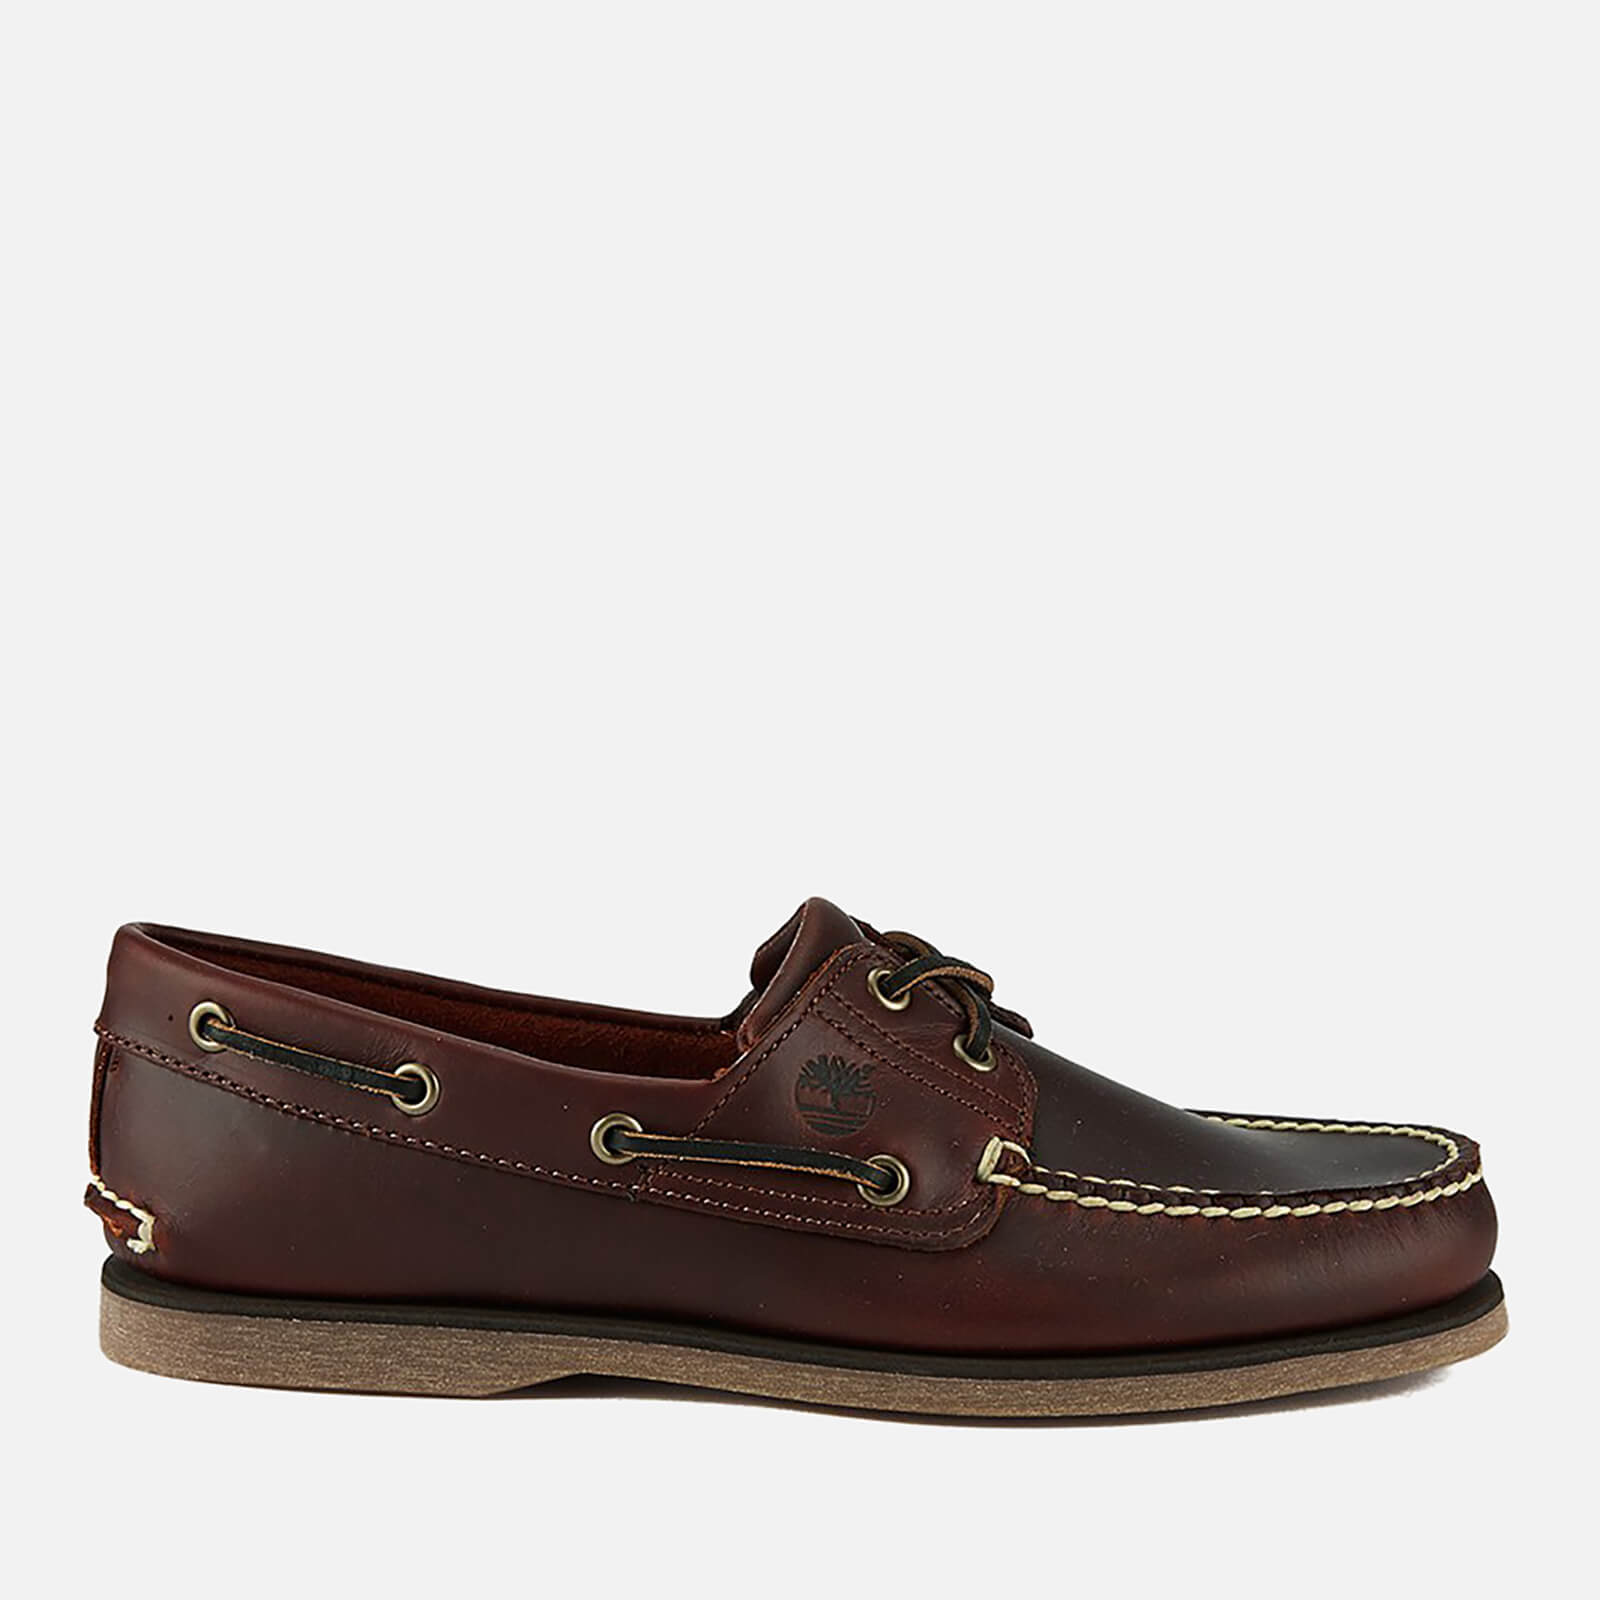 Timberland Mens Classic 2 Eye Boat Shoes Rootbeer Smooth Uk 9 Brown